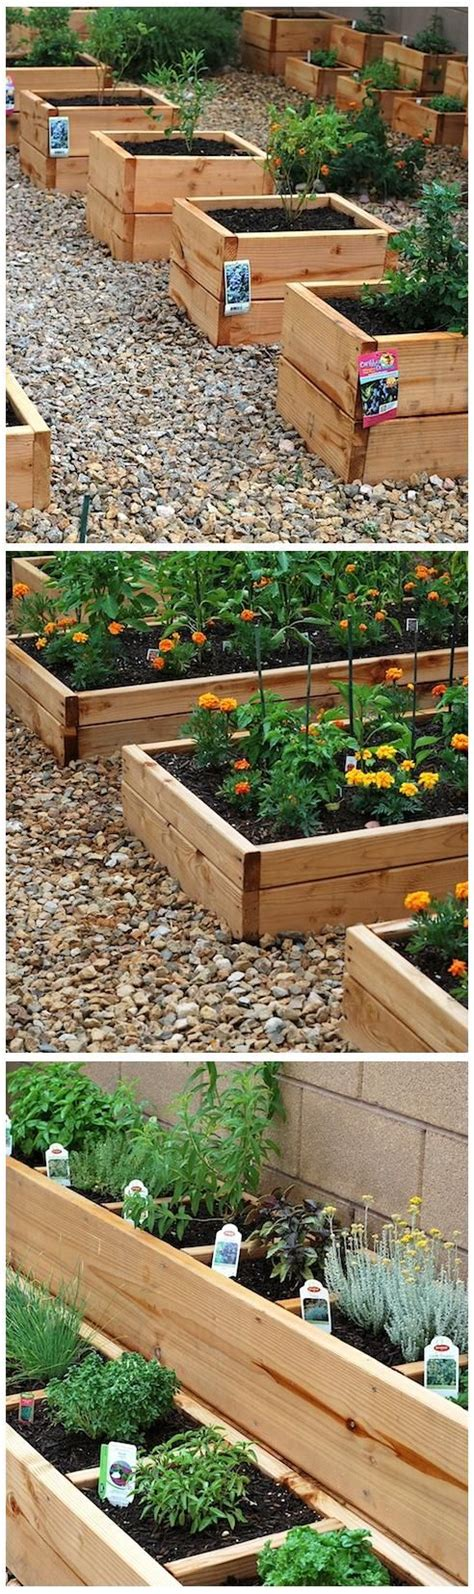 raised bed gardening tips 14 best images about huerto on pinterest facebook